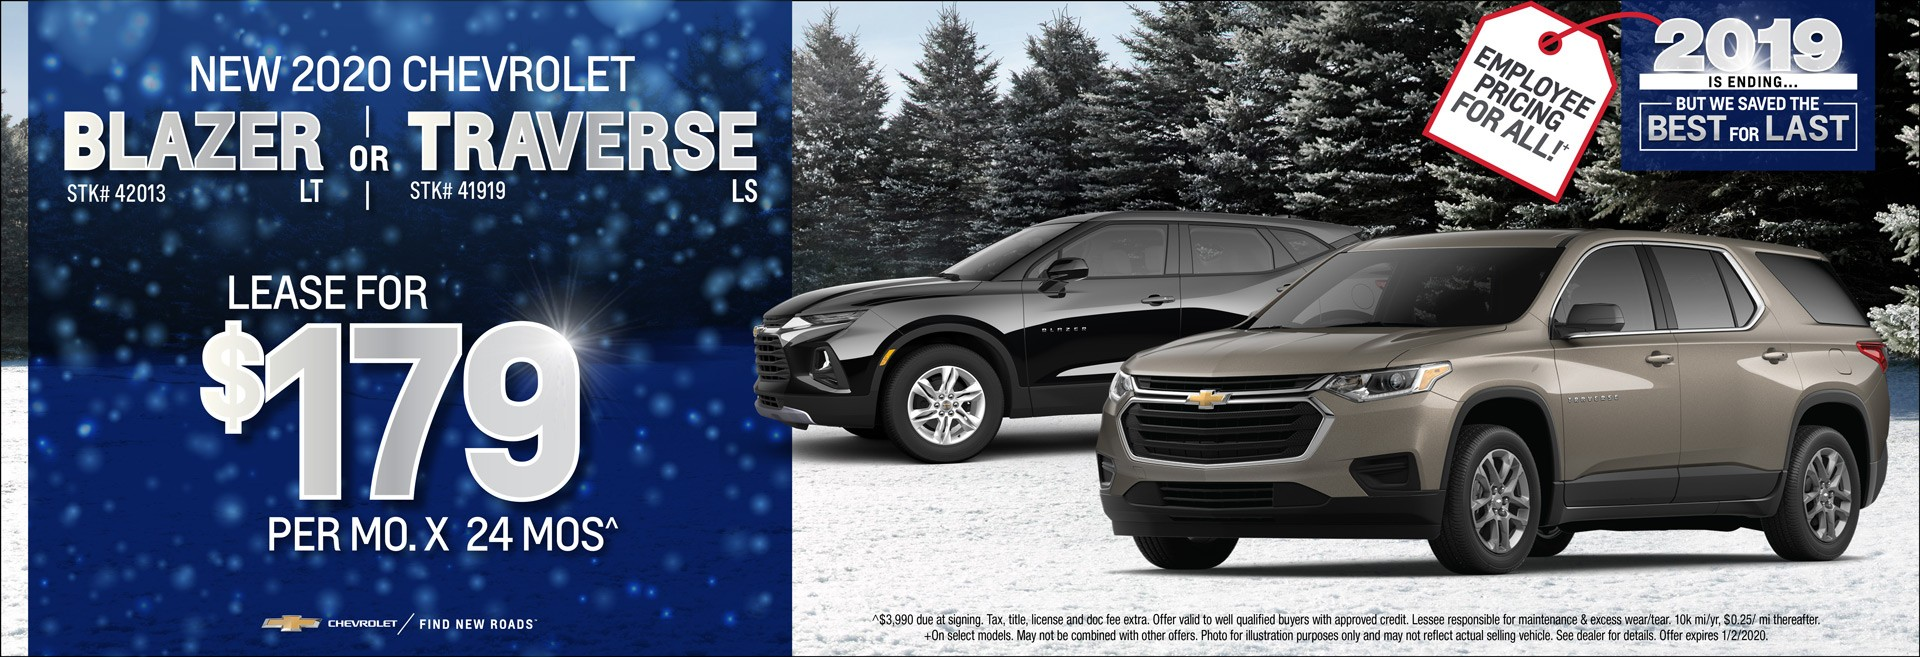 New 2020 Chevrolet Blazer LT or Traverse LS Lease for $179/mo x 24mos.